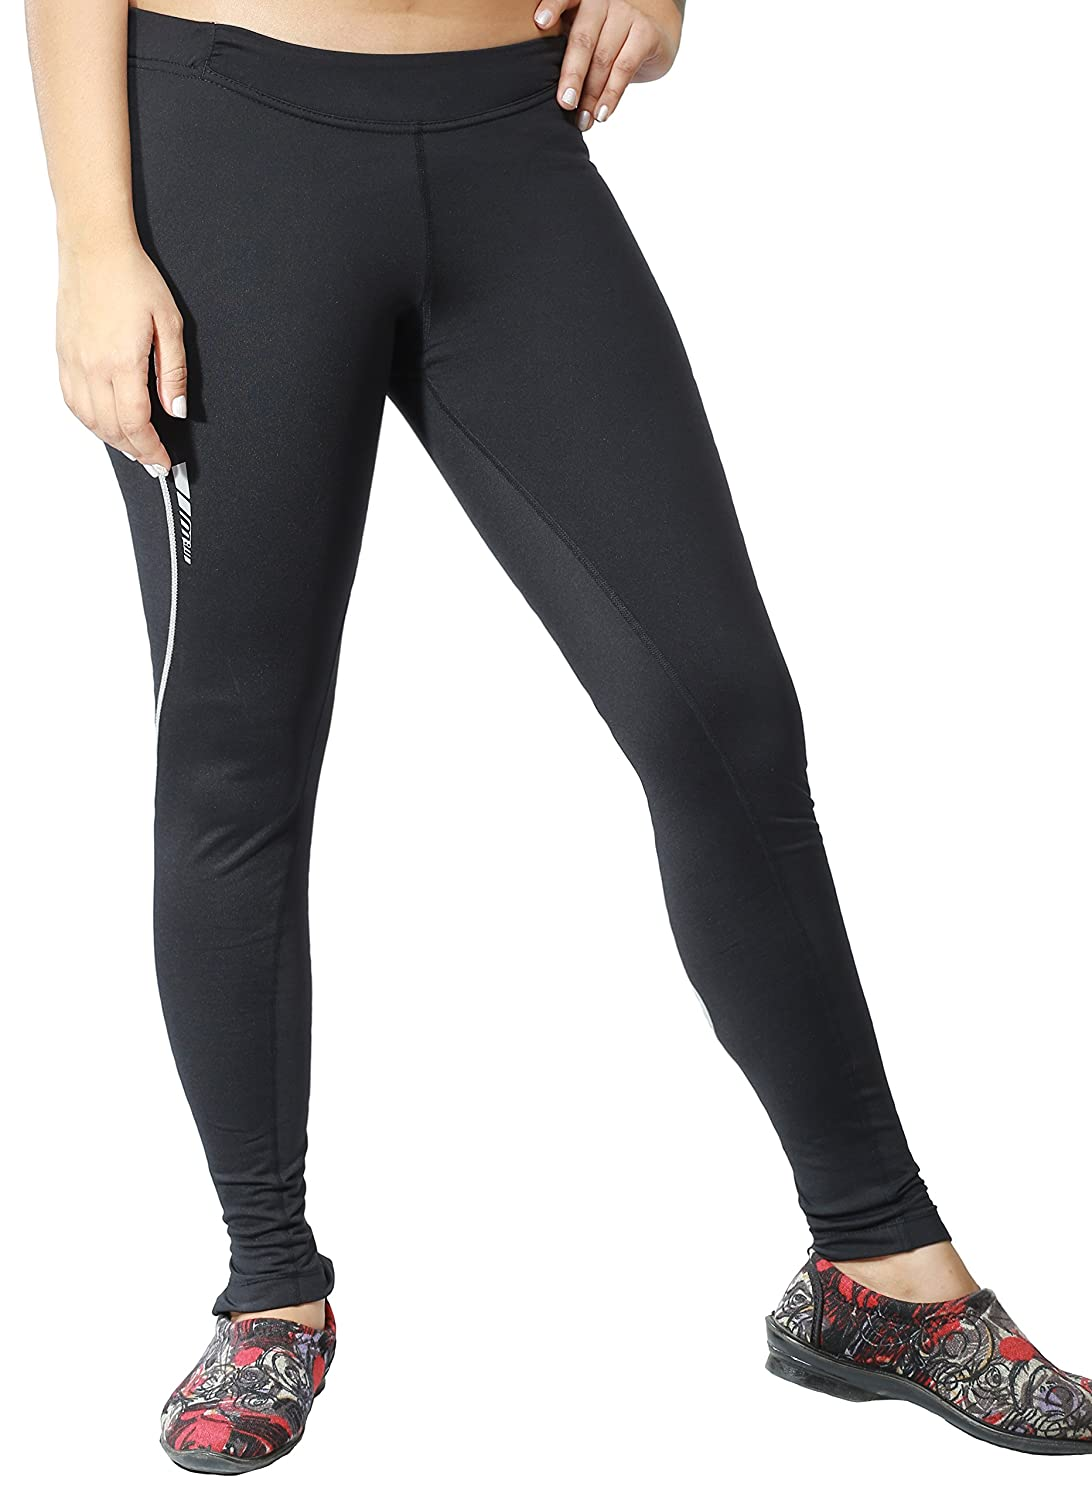 Maks Women Elite Design Winter Thermal Running Tights Long Pants Ankle Zipper Reflective Elements Small) GR-WRT9905BK-S